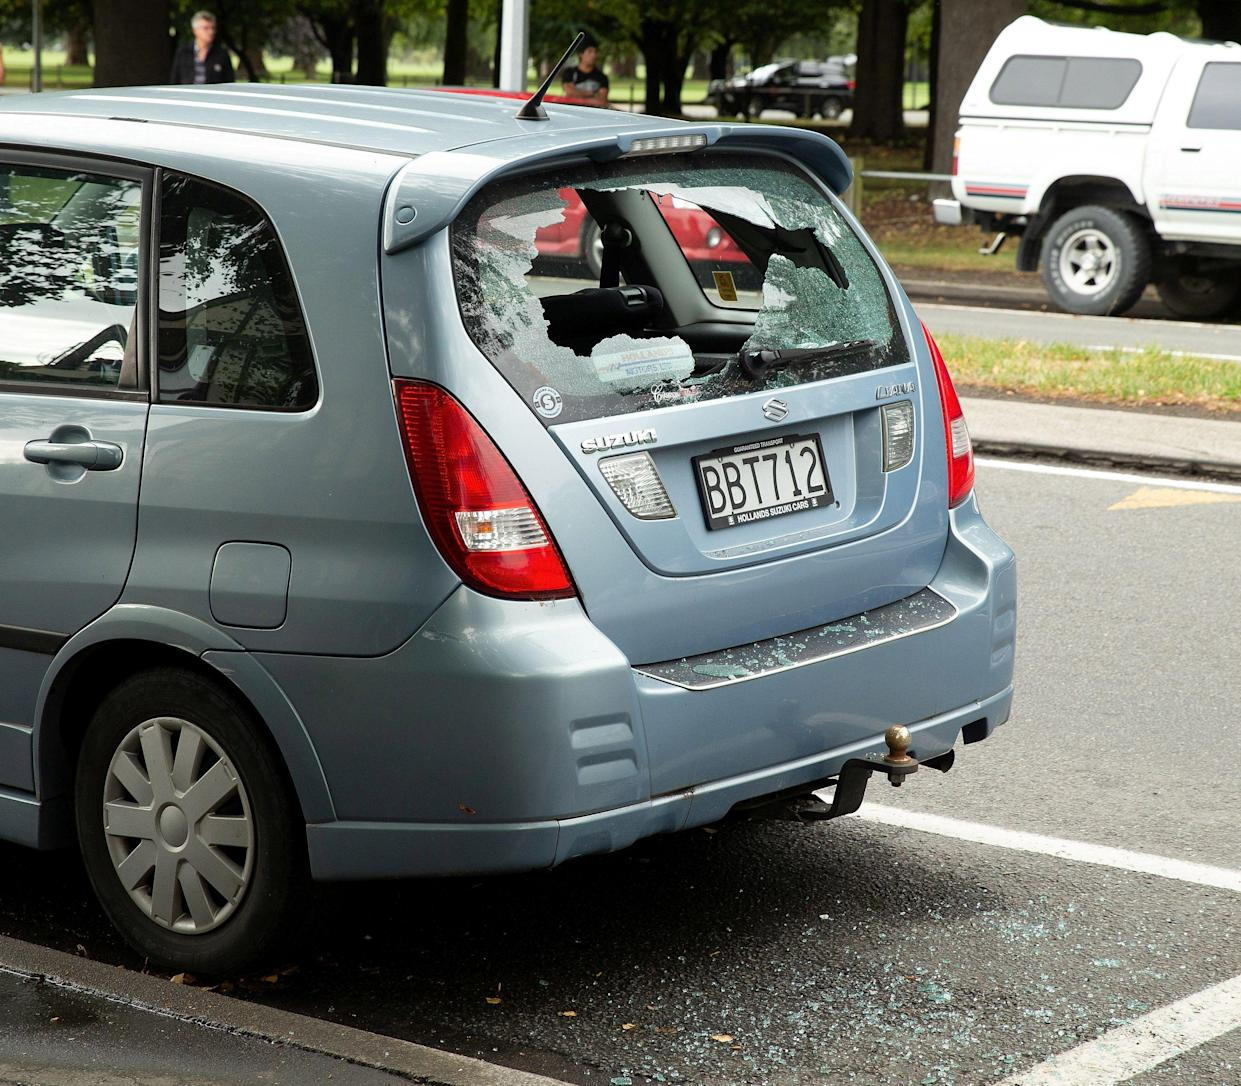 Shattered car window following a shooting at the Al Noor mosque in Christchurch,New Zealand, March 15, 2019. (Photo: Martin Hunter/Reuters)